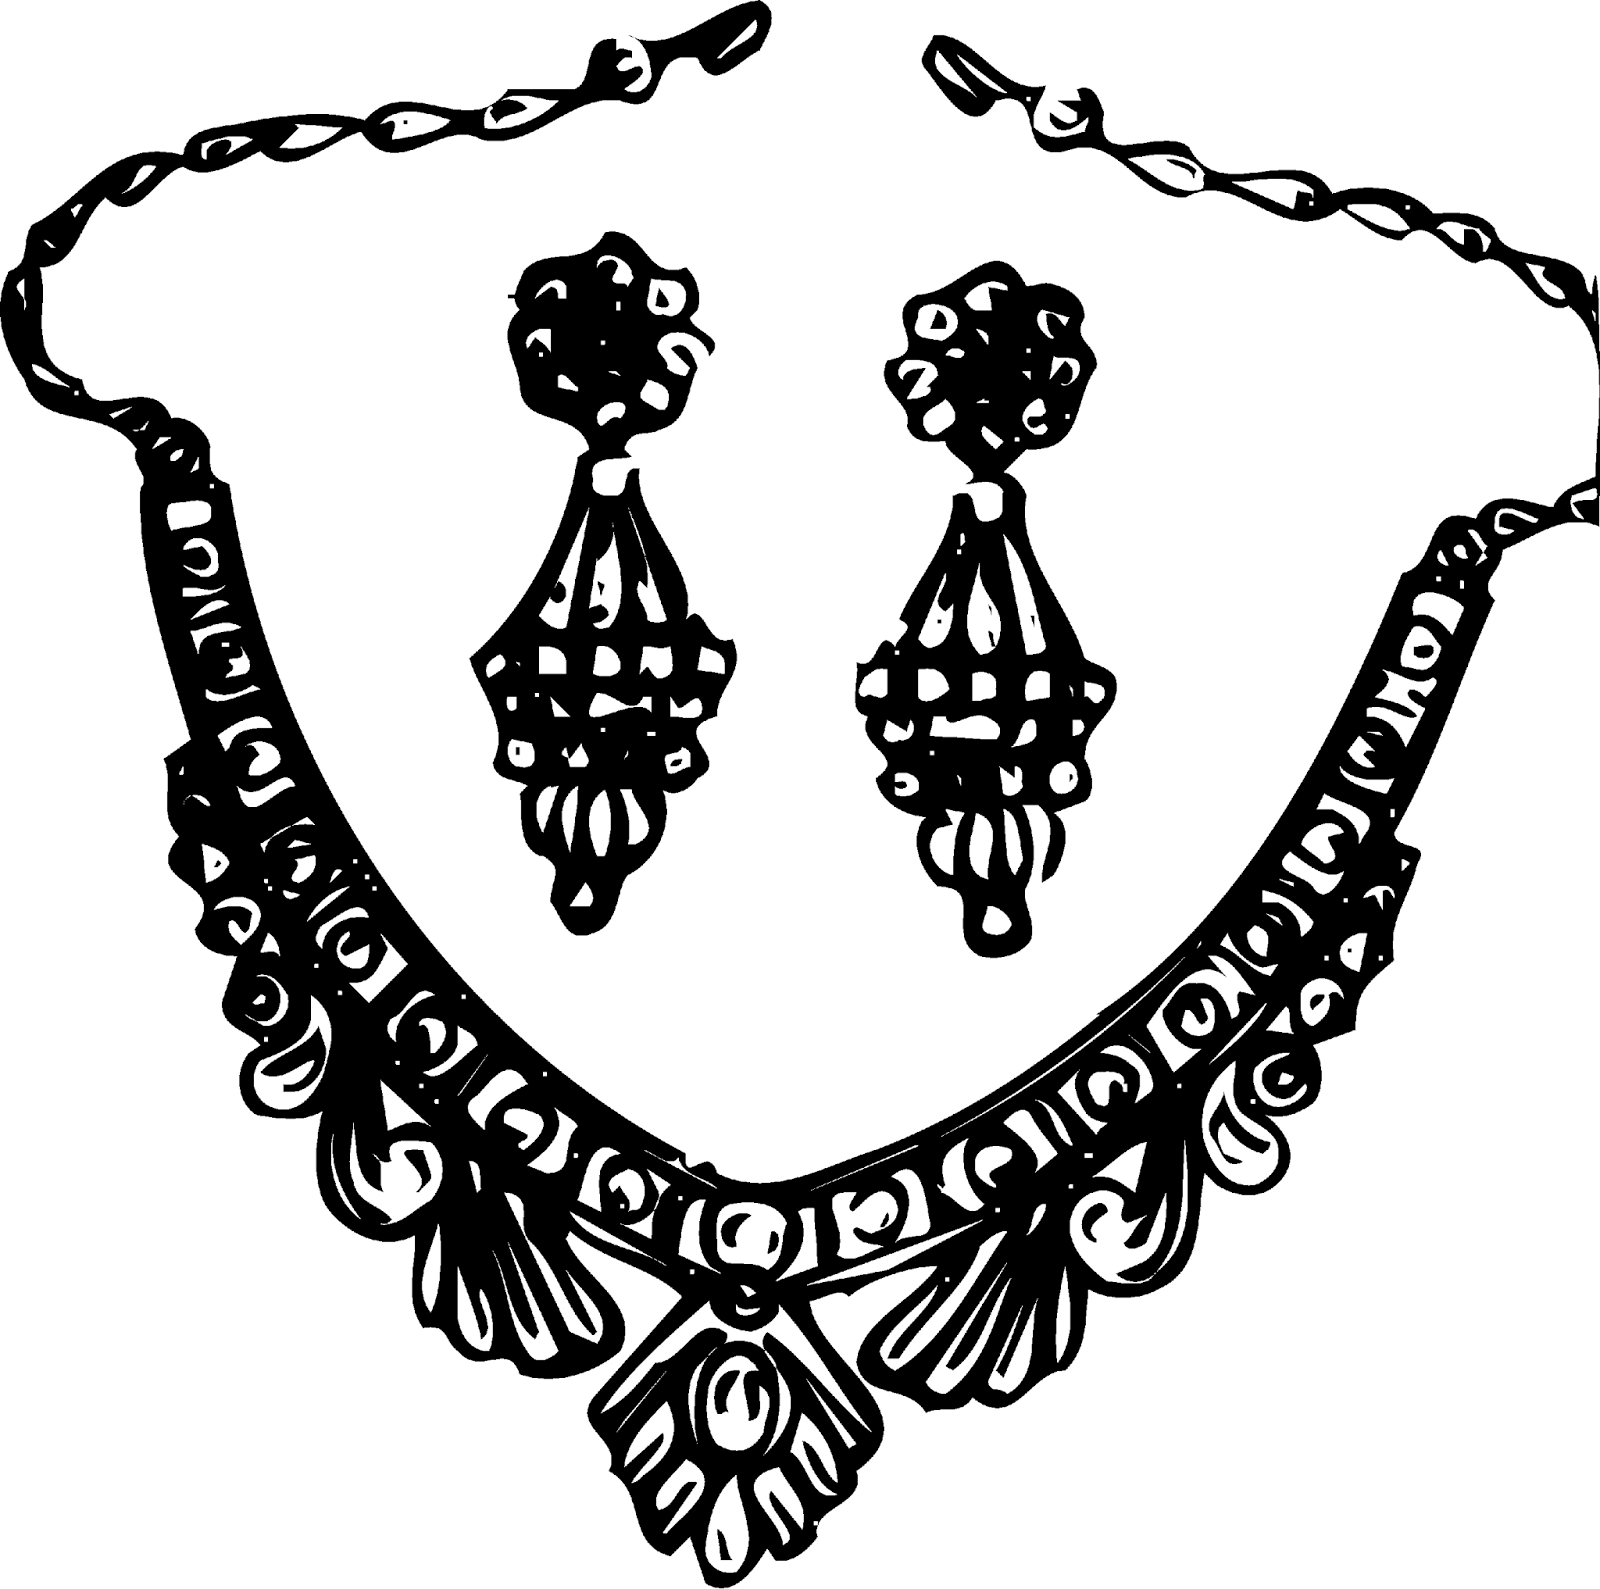 Siwlry clipart clipart freeuse Jewellery Clipart Group with 69+ items clipart freeuse